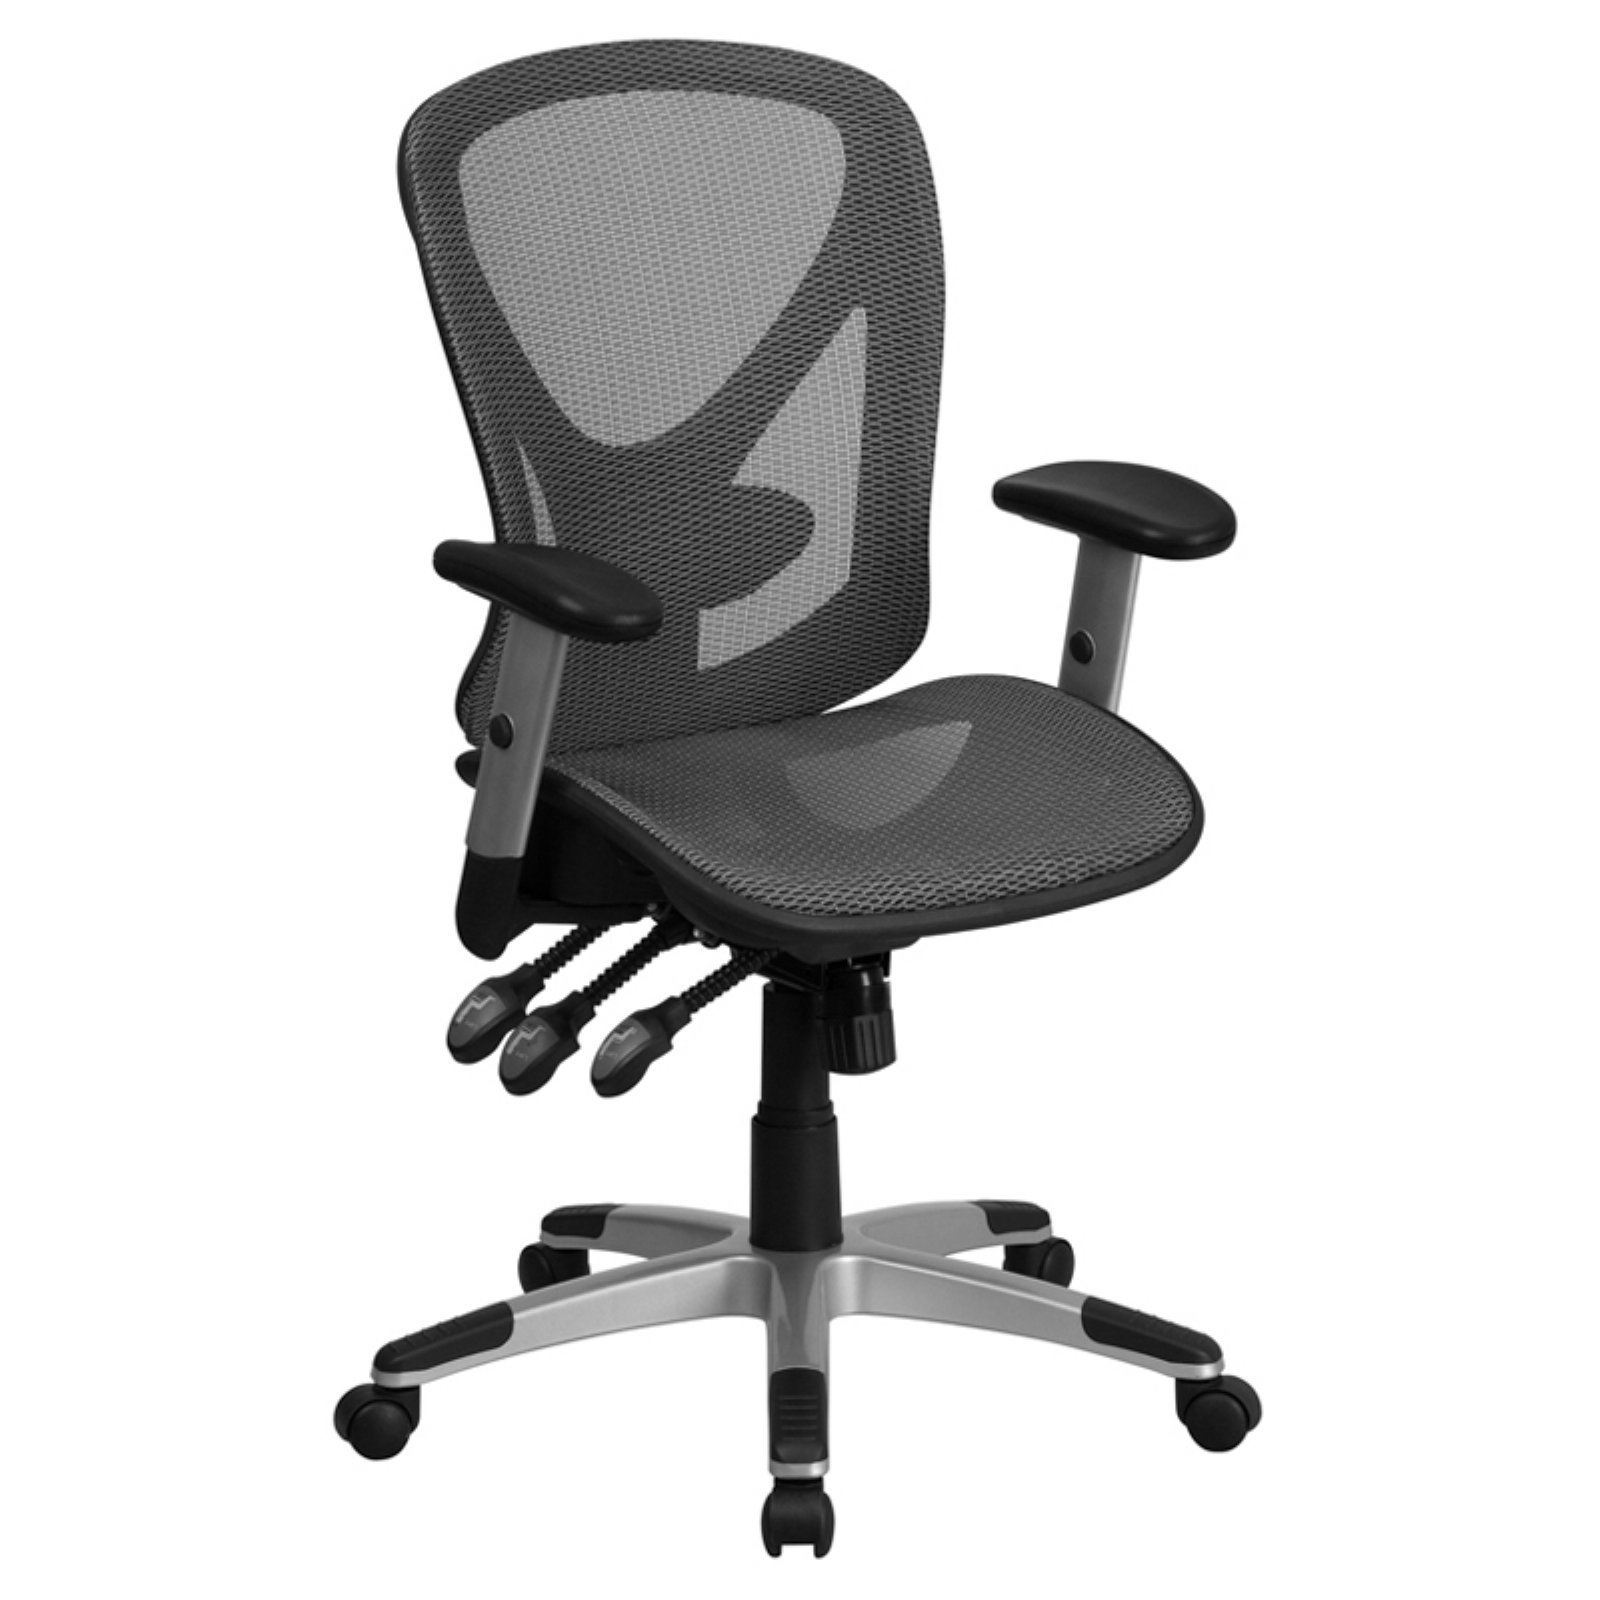 chair design back angle wheelchair kid flash furniture mid gray mesh executive swivel office with and height adjustment walmart com